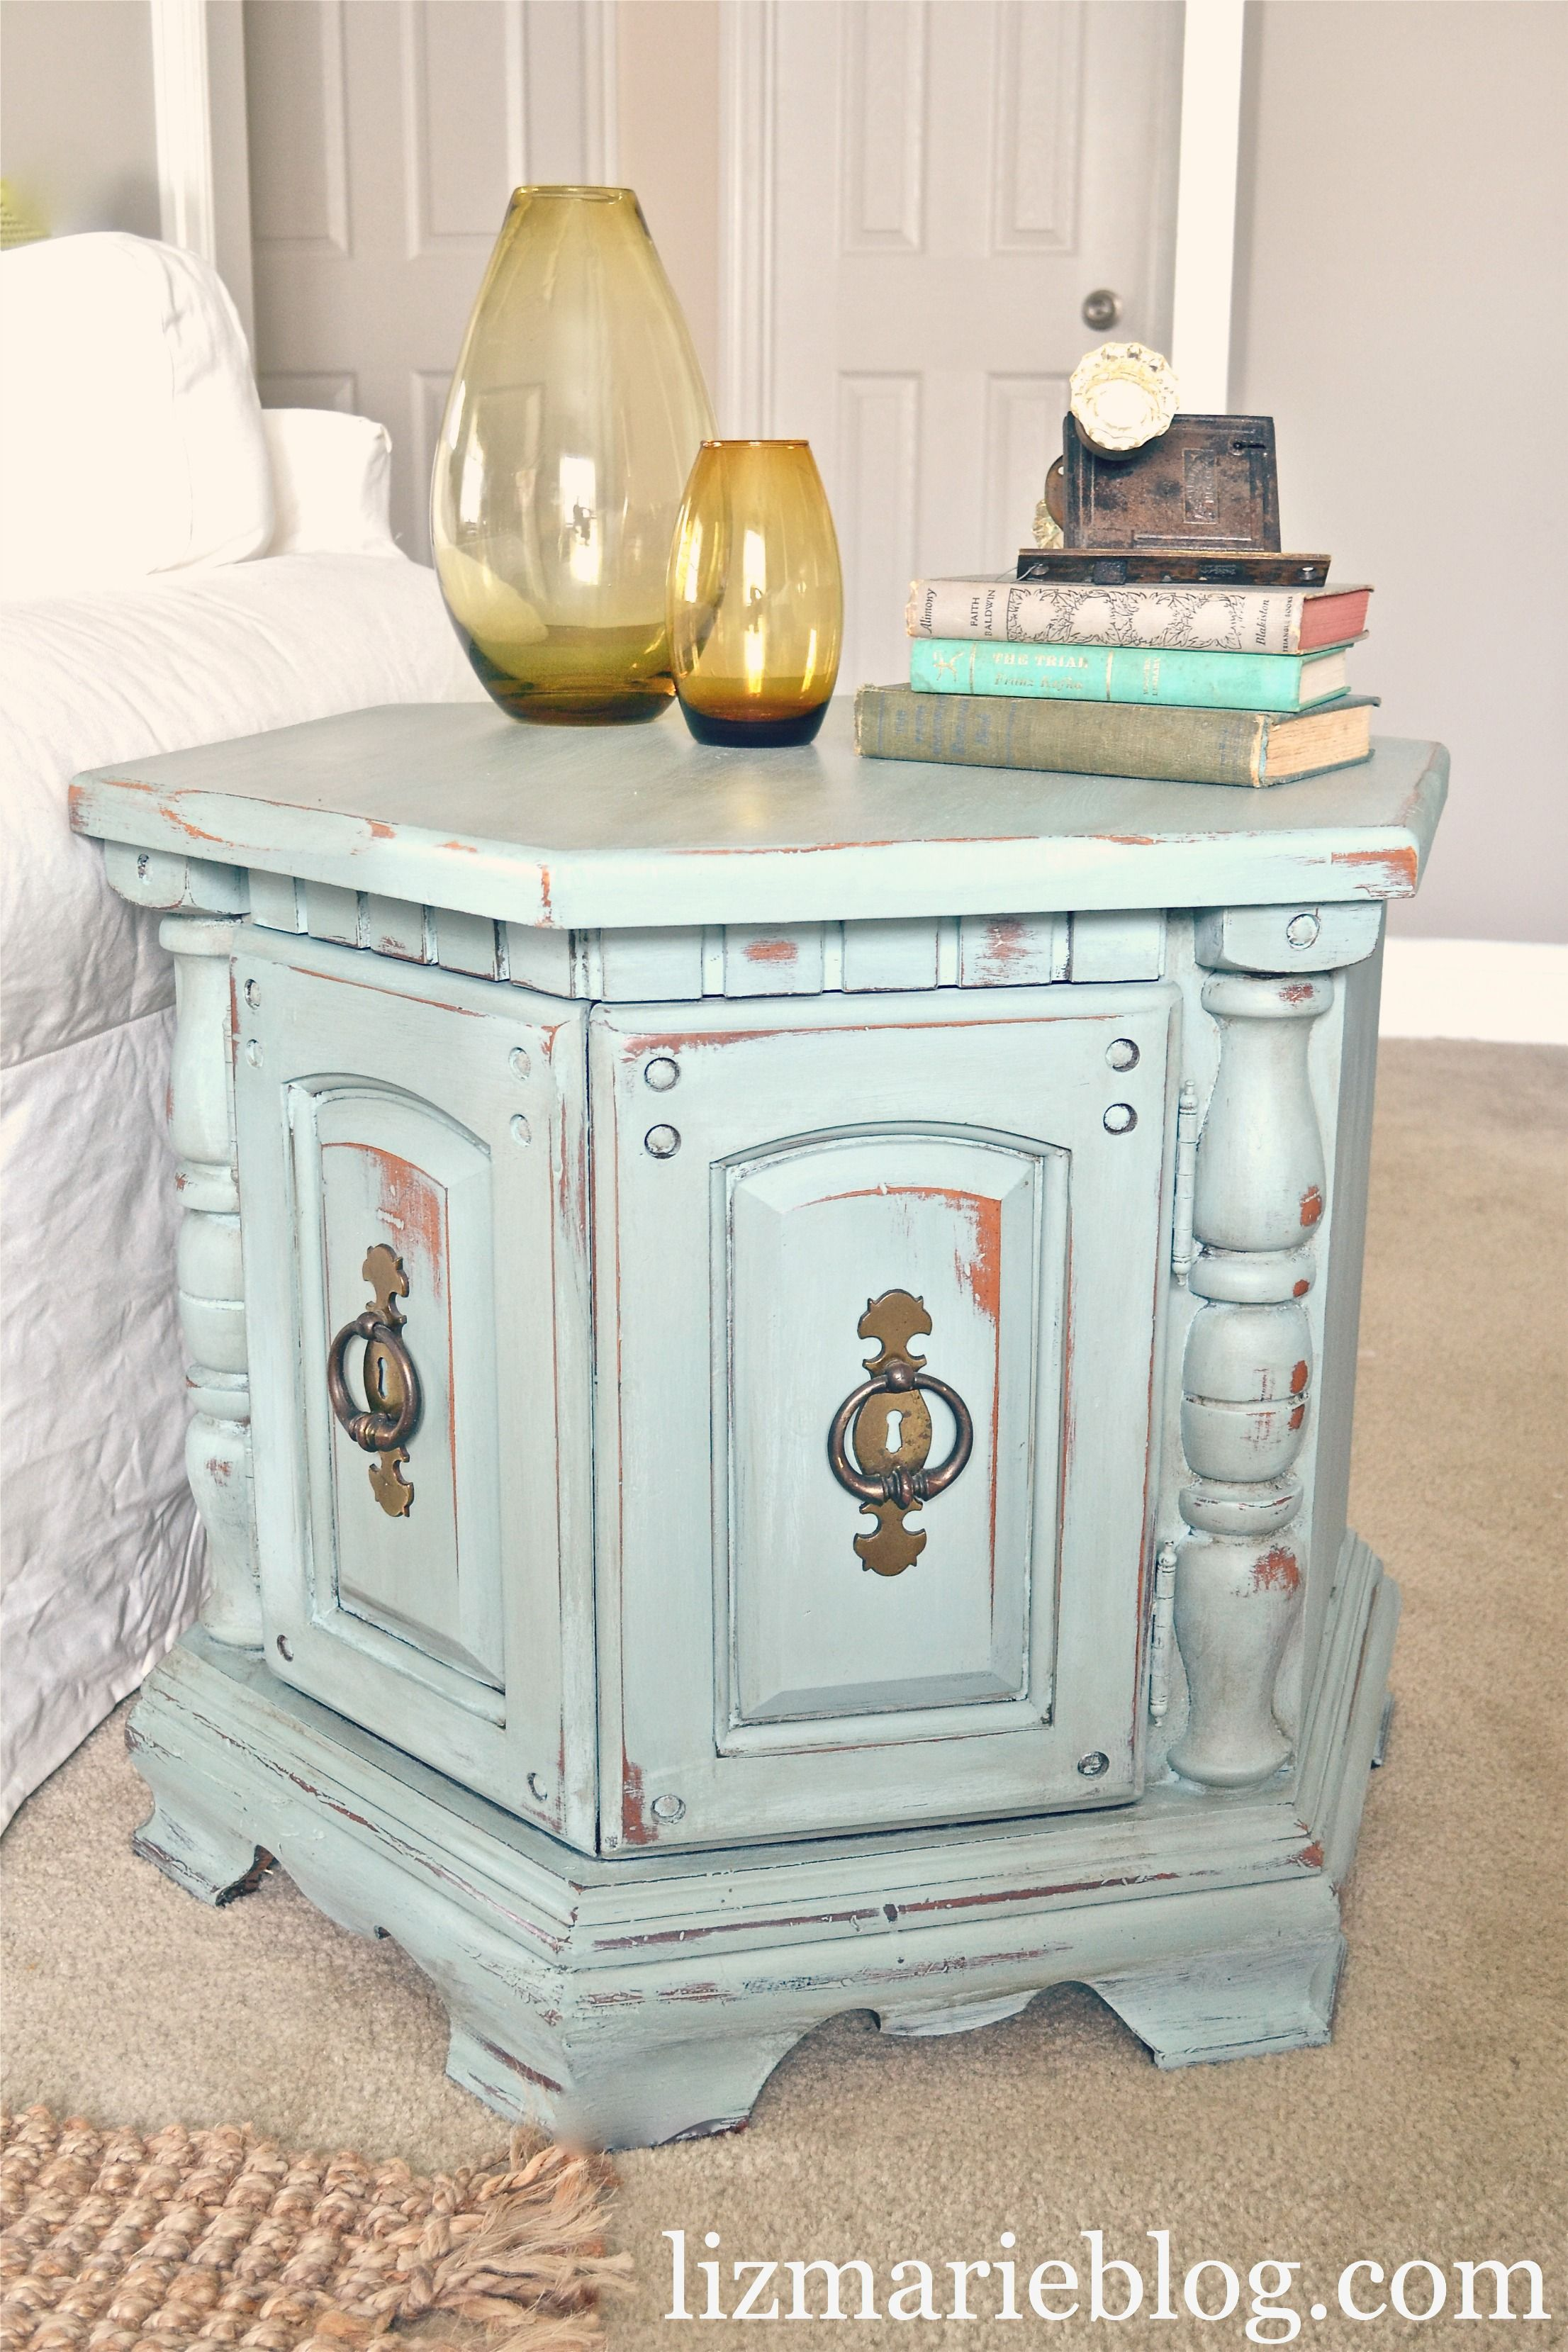 Diy furniture painting ideas - Duck Duck Blue